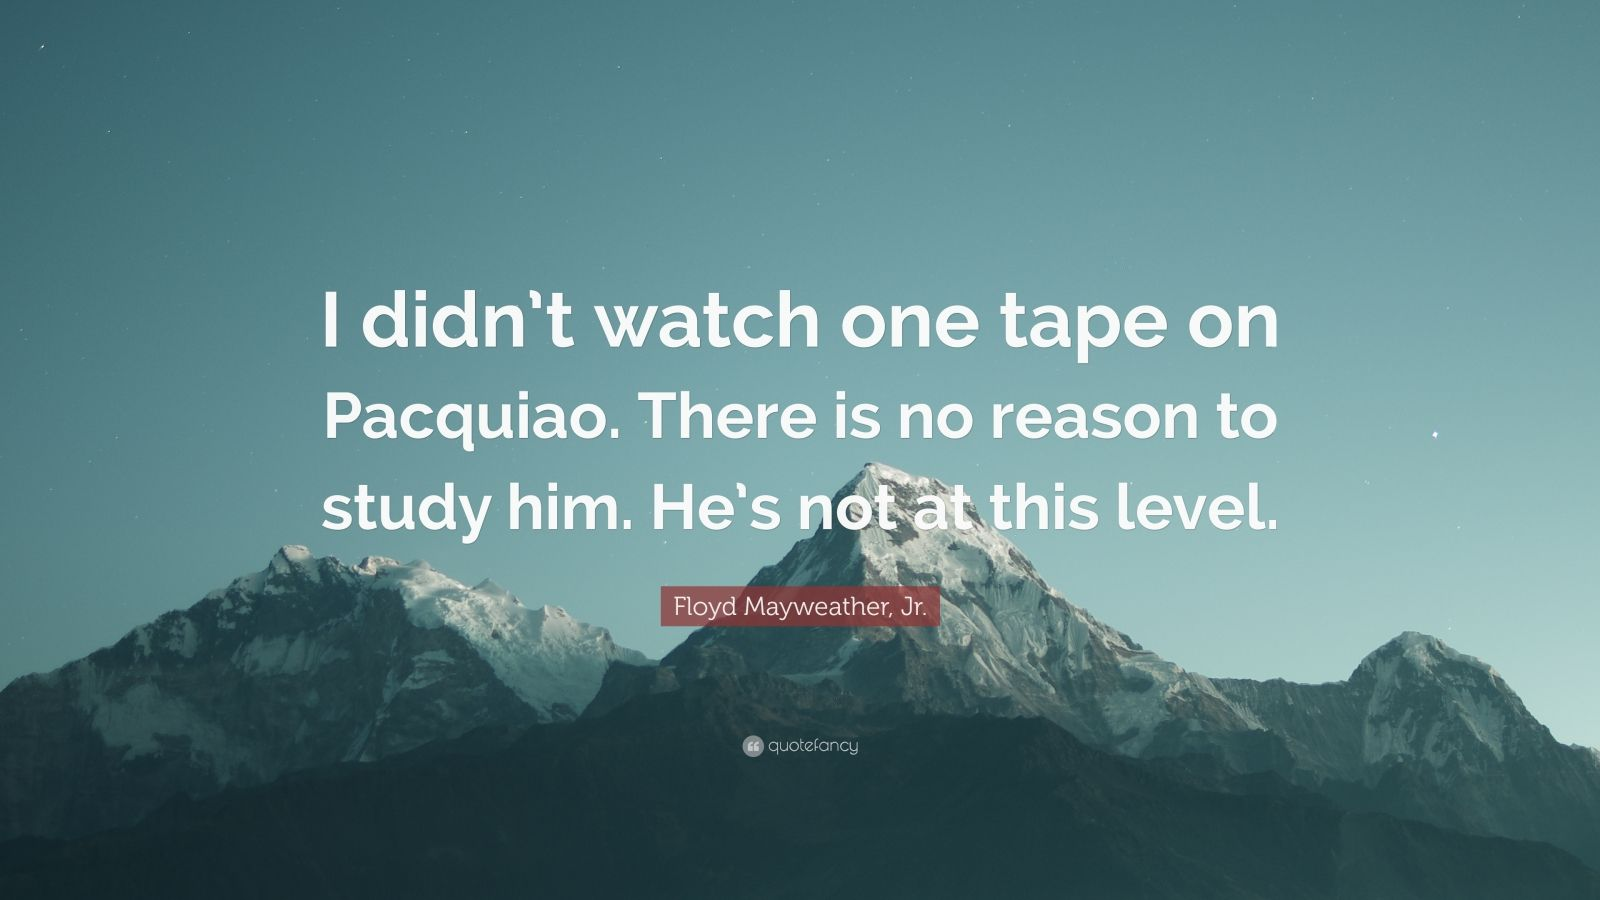 """Floyd Mayweather, Jr. Quote: """"I didn't watch one tape on Pacquiao. There is no reason to study him. He's not at this level."""""""